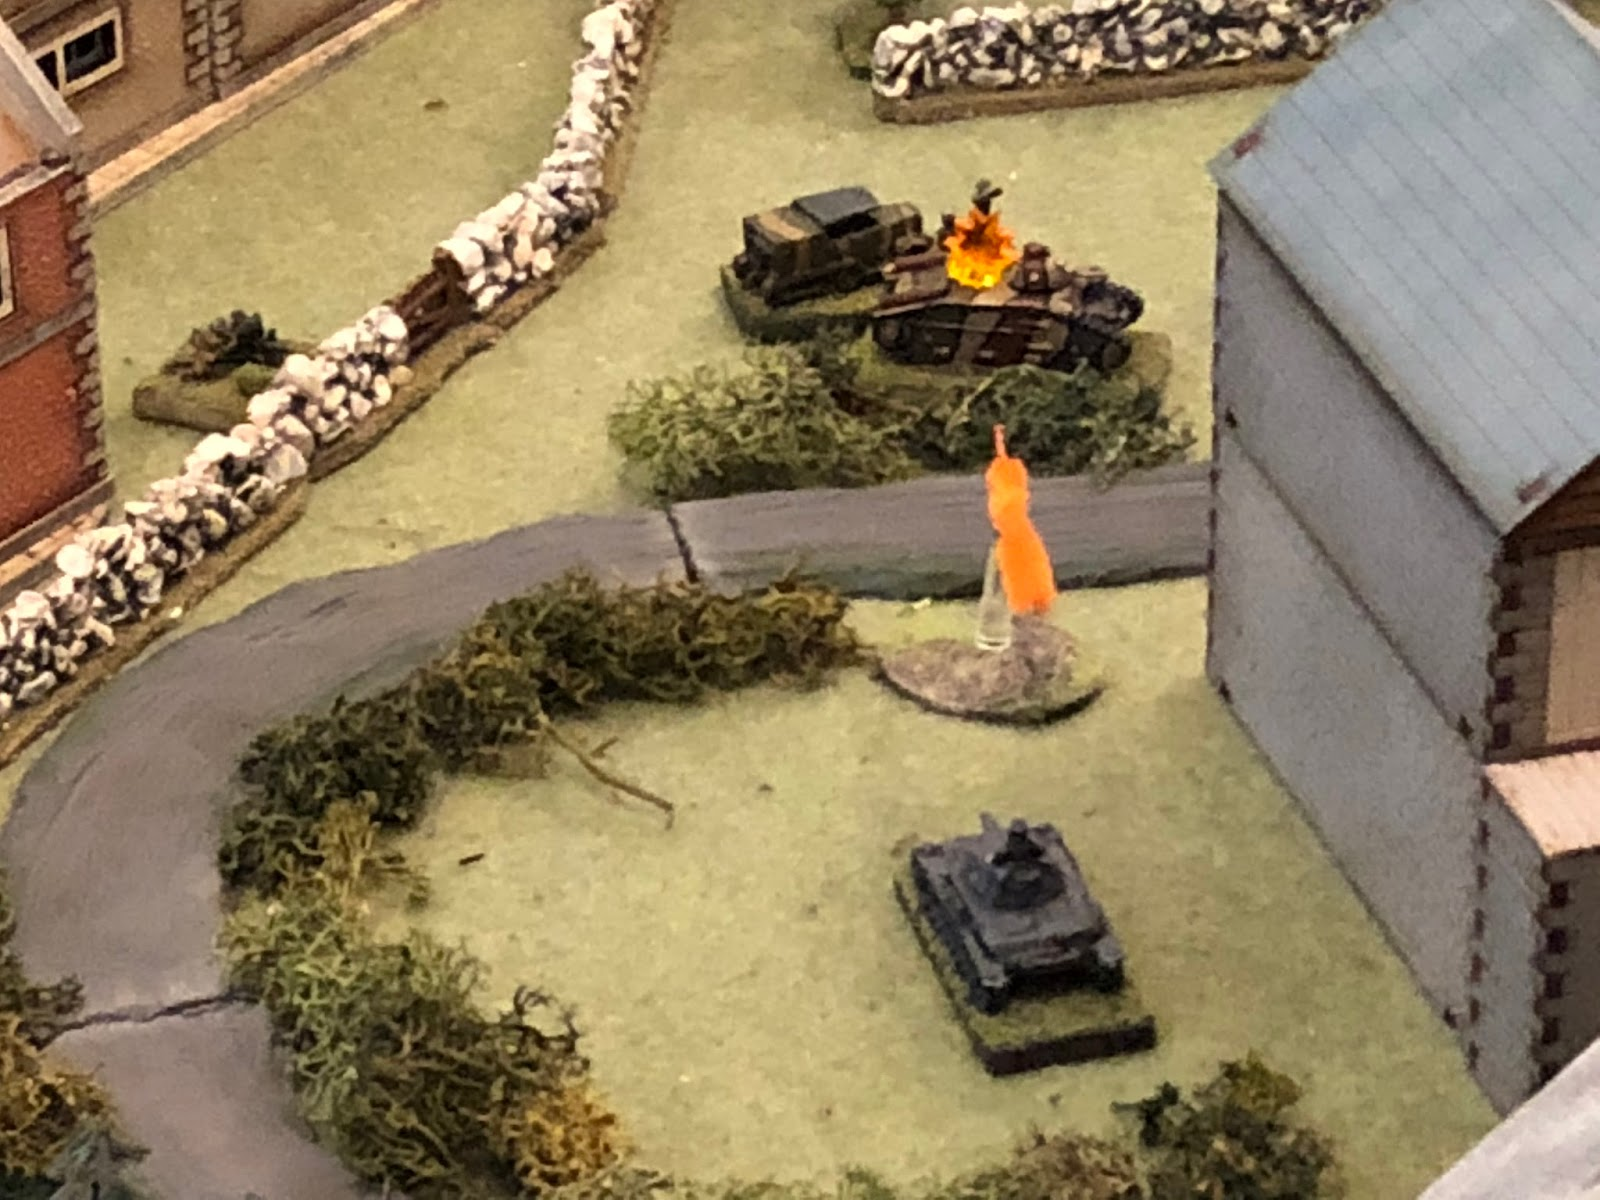 And just as the enemy ATG gets into position (top left), SSgt Mangold's tank fires at the flank of the Char B...